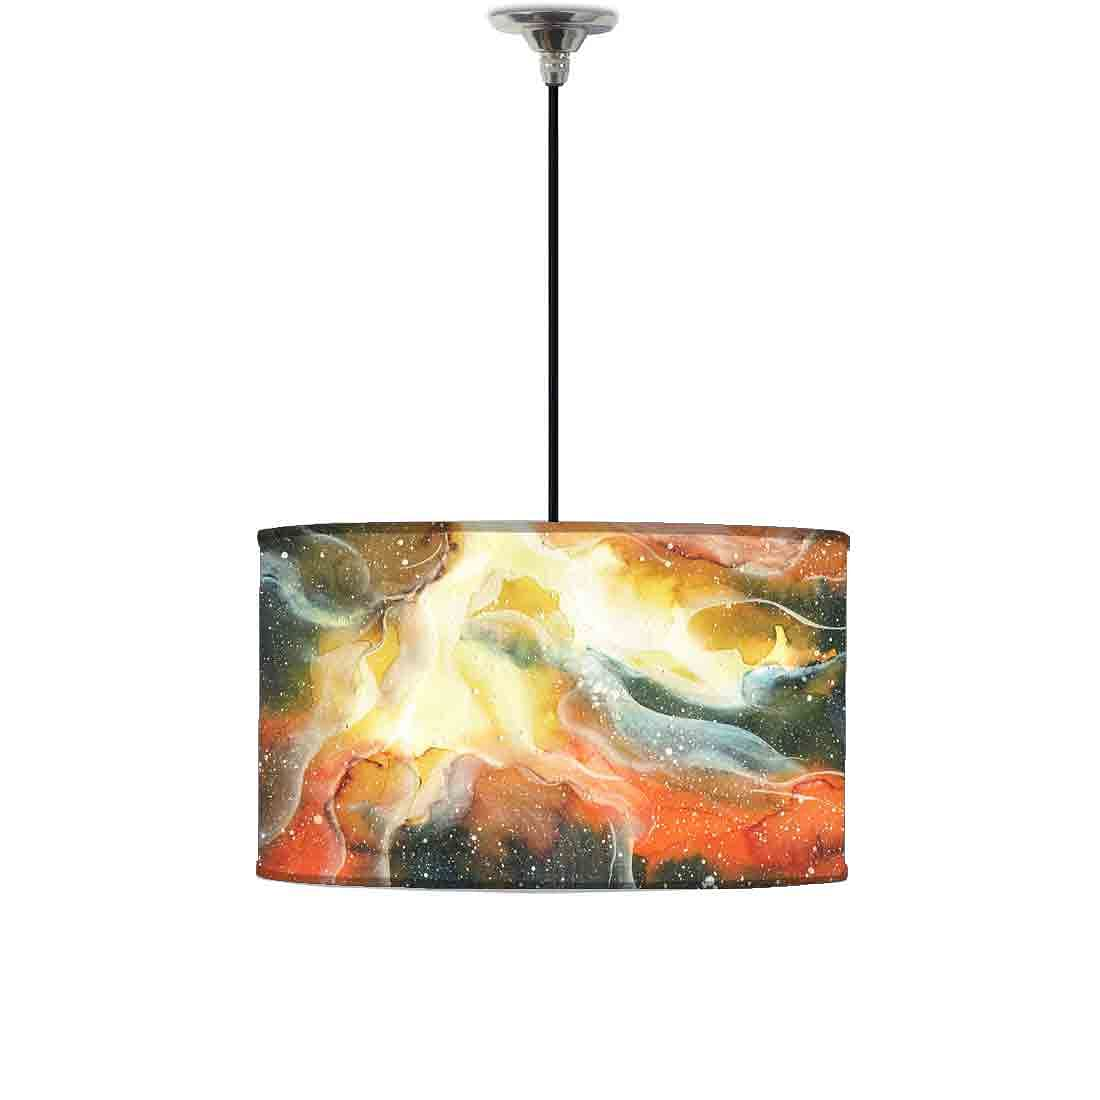 Ceiling Lamp Hanging Drum Lampshade - Yellow and Green Space Watercolor